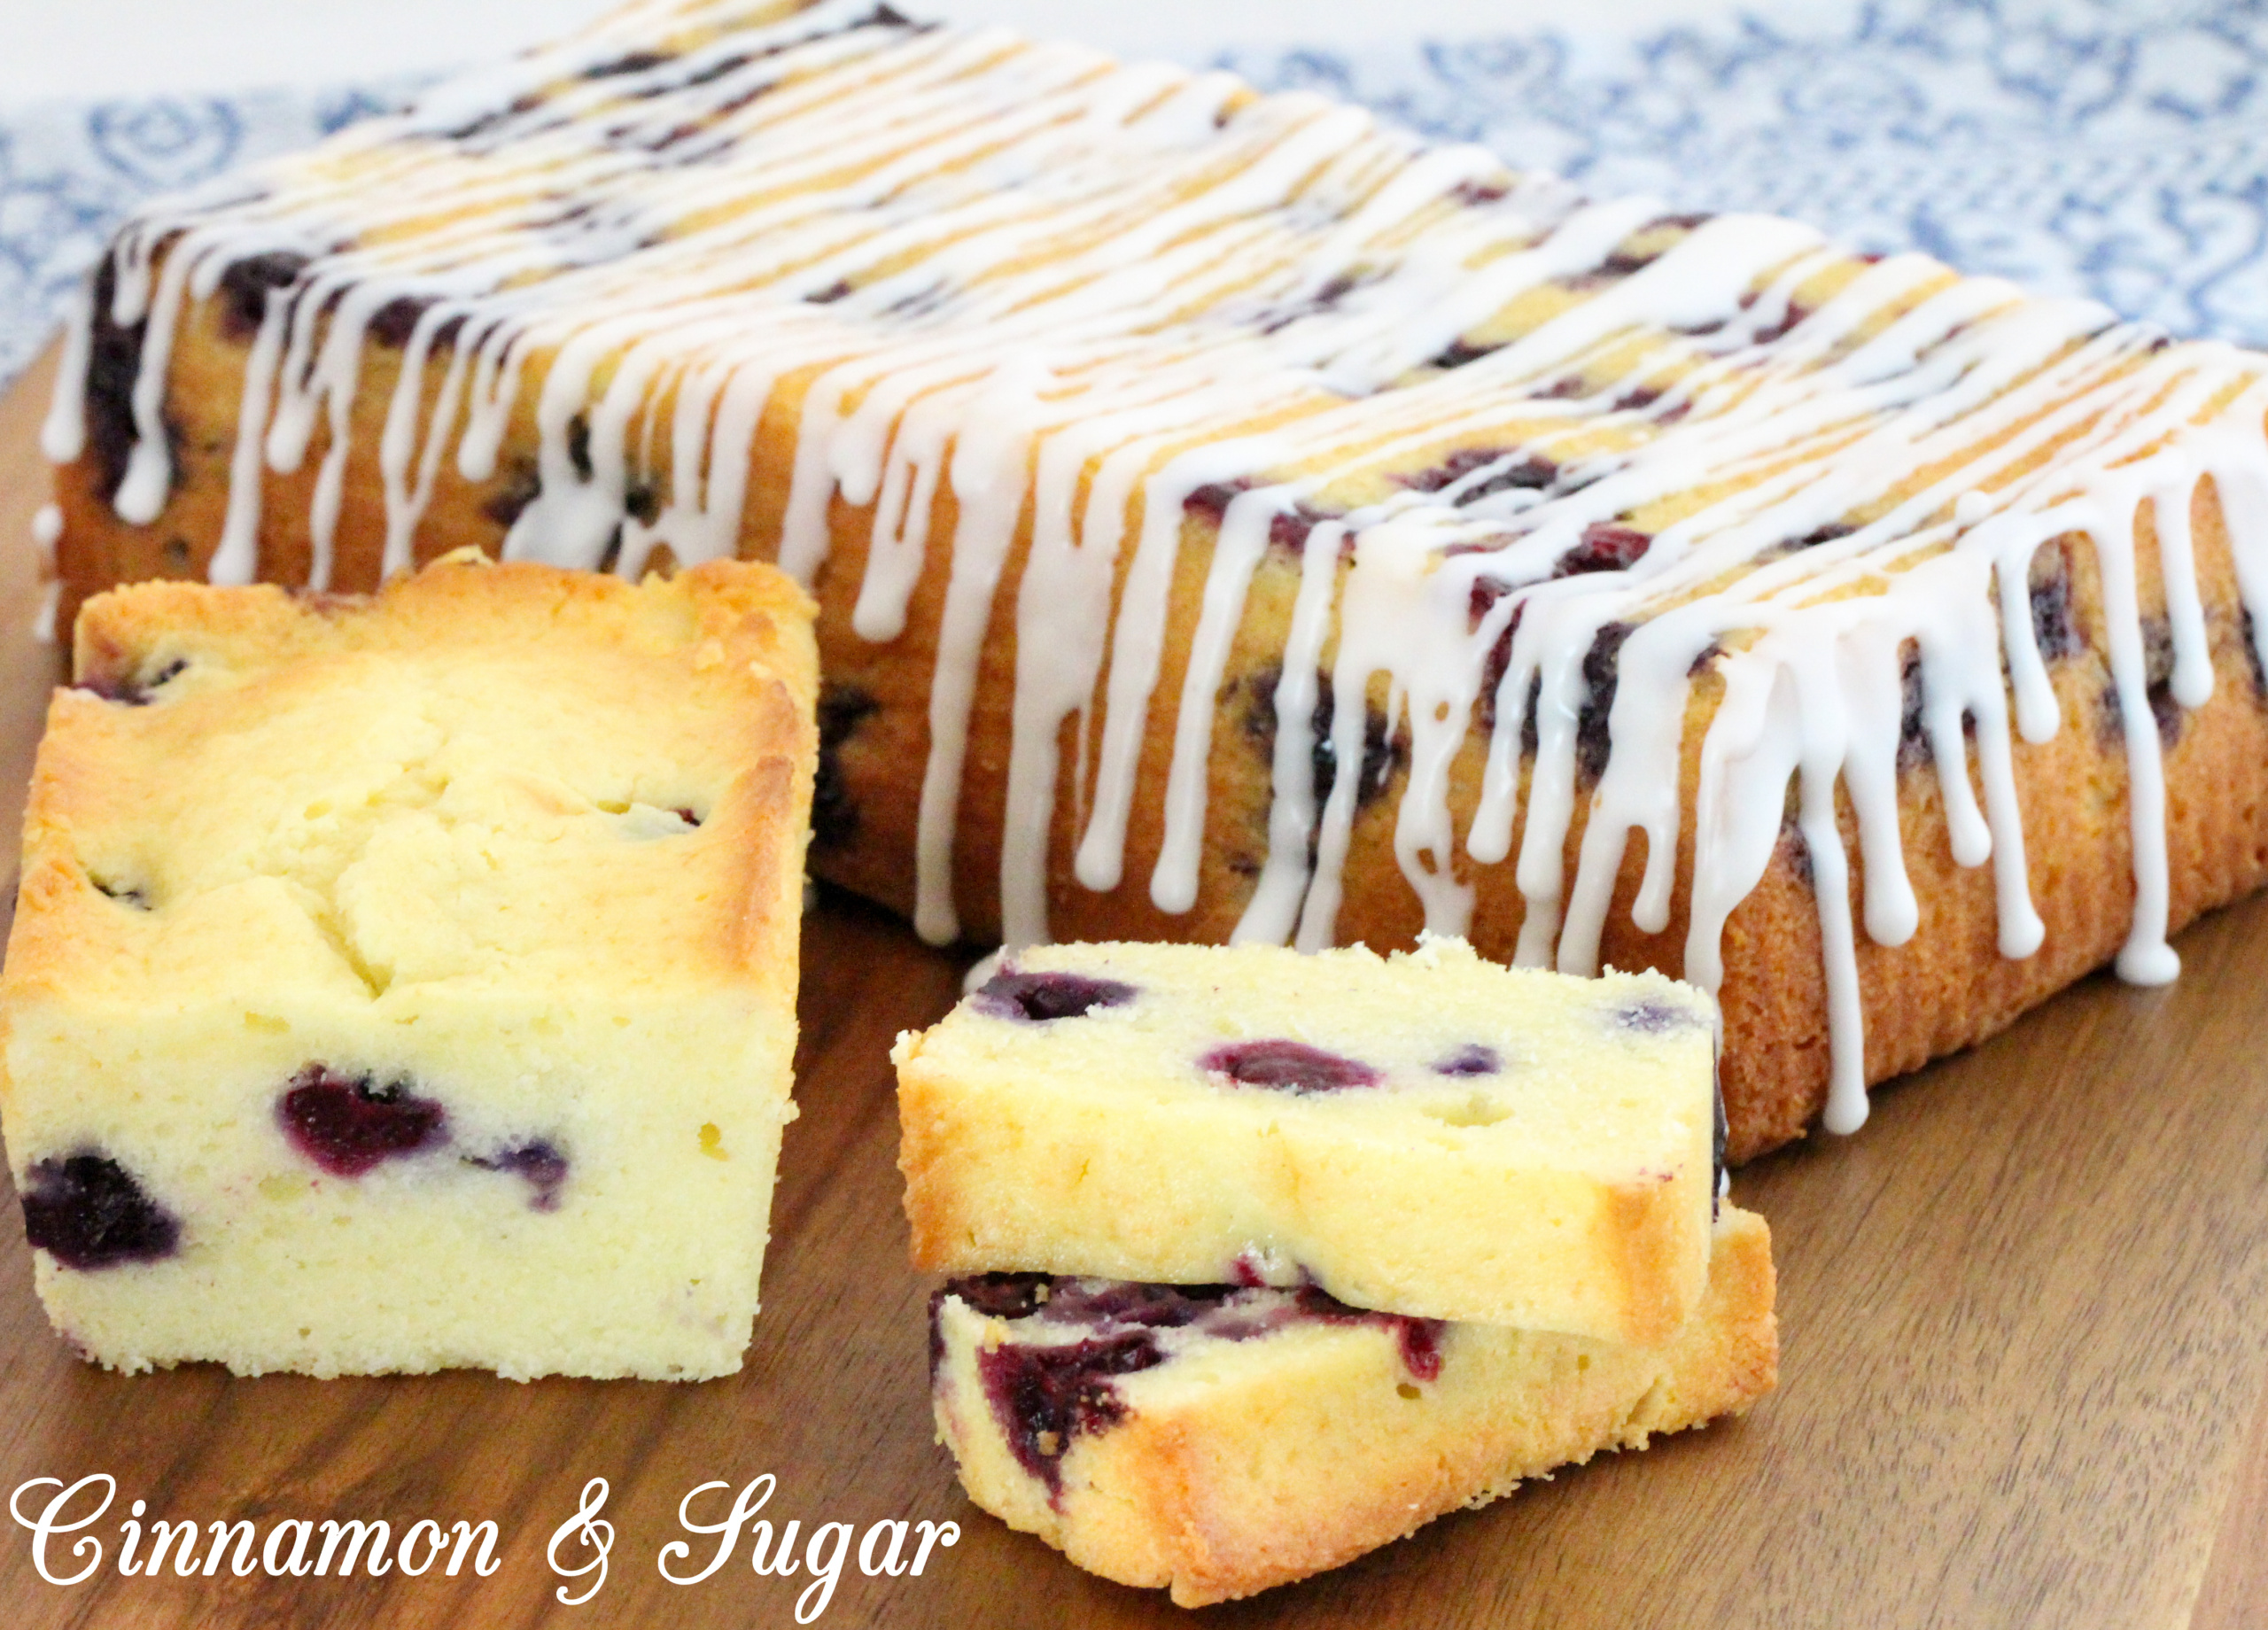 Blueberry Cream Cheese Bread is loaded with plump, fresh blueberries and tangy cream cheese, making this a supremely moist and flavorful treat! Recipe shared with permission granted by Lee Hollis, author of DEATH OF A BLUEBERRY TART.